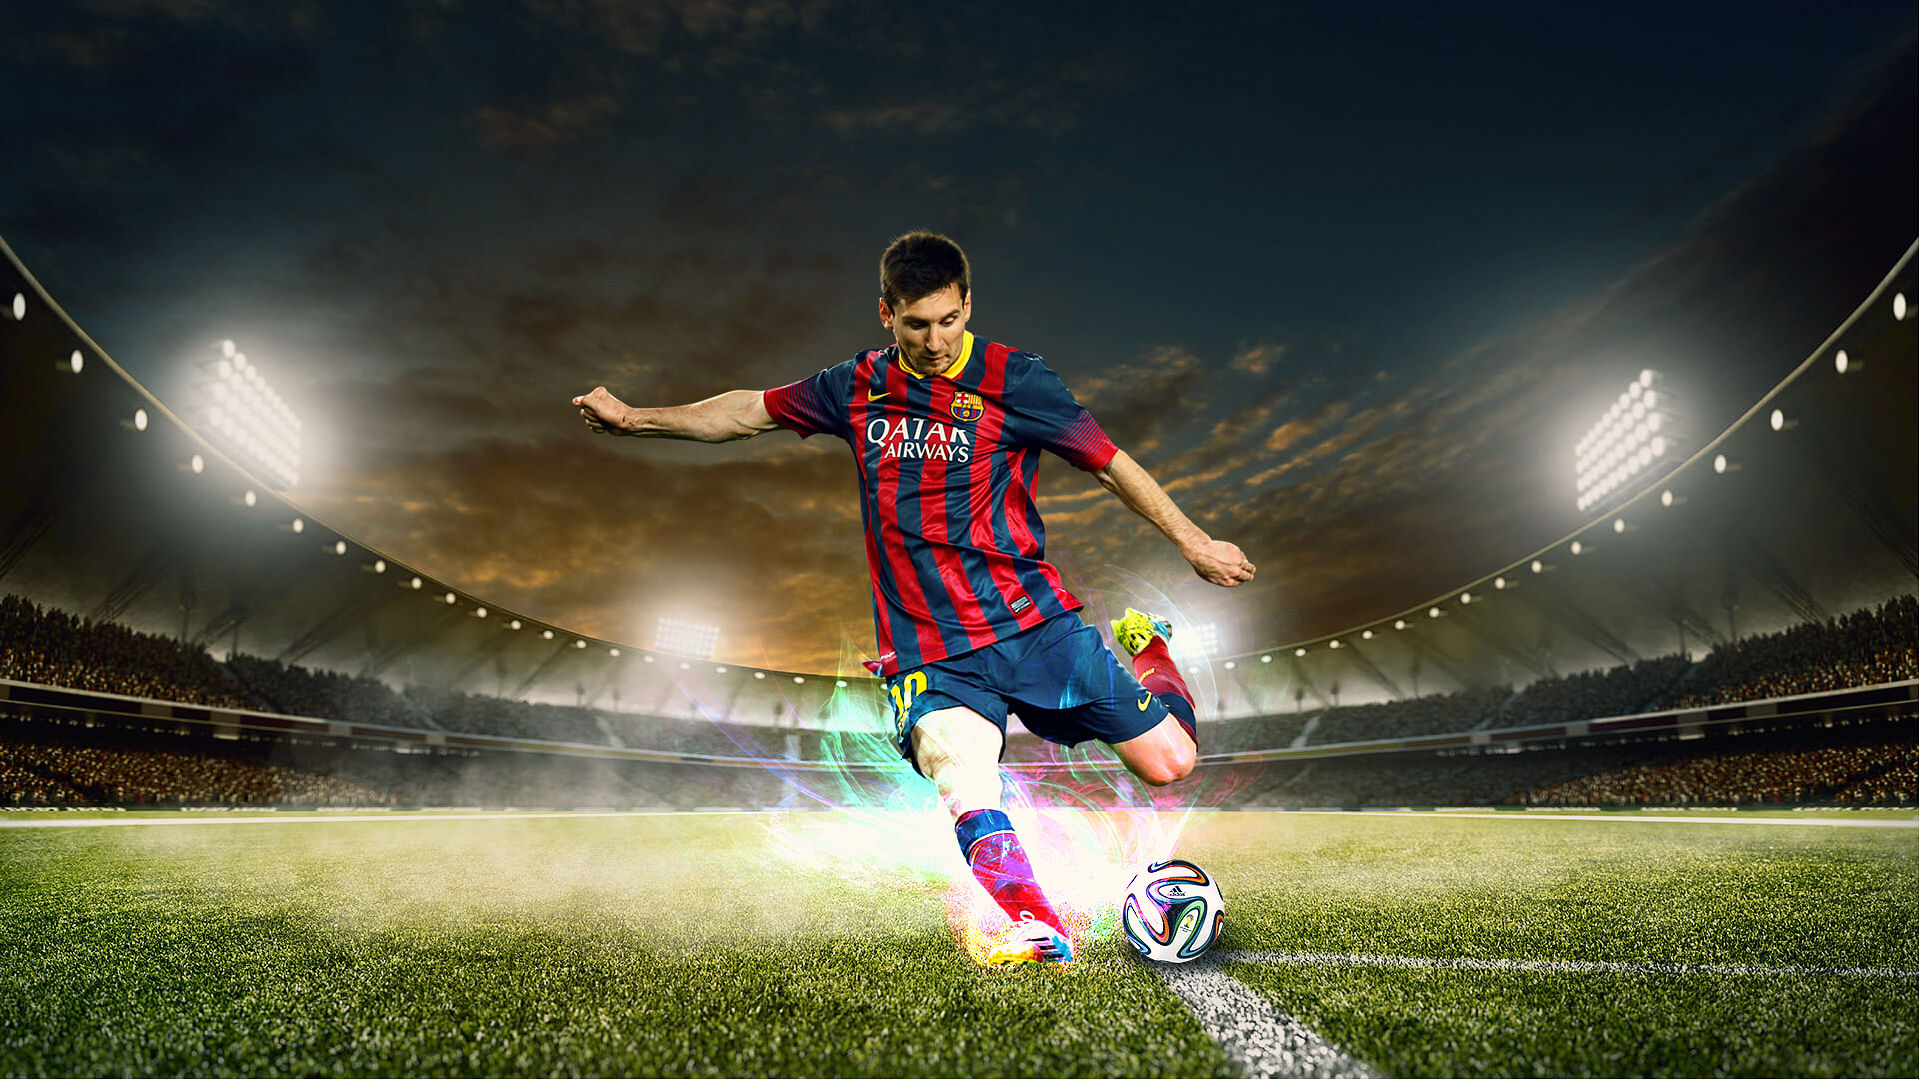 Free Soccer Wallpaper: Lionel Messi HD Wallpapers